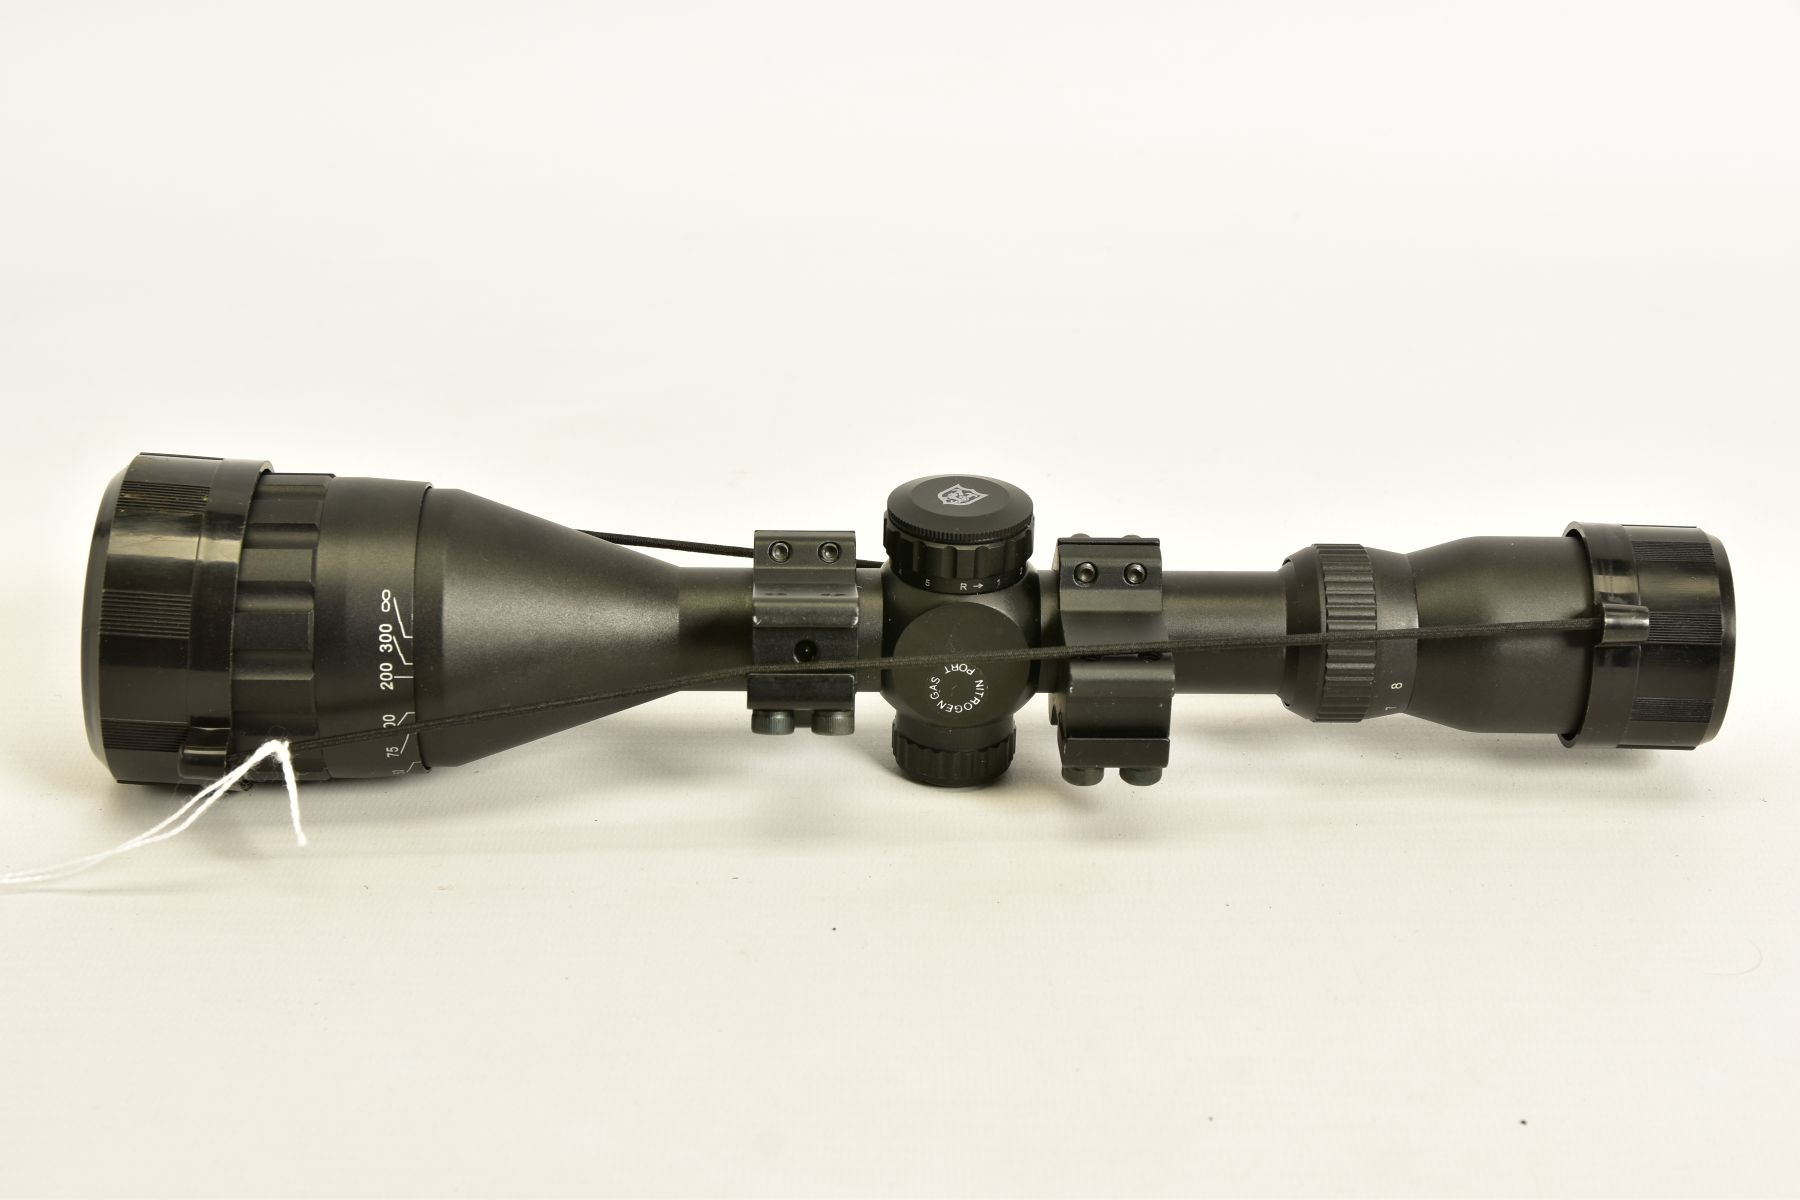 A NIKO STIRLING 3.9 X 50 RIFLE SCOPE and mounts, it appears to be in unused condition - Image 7 of 8